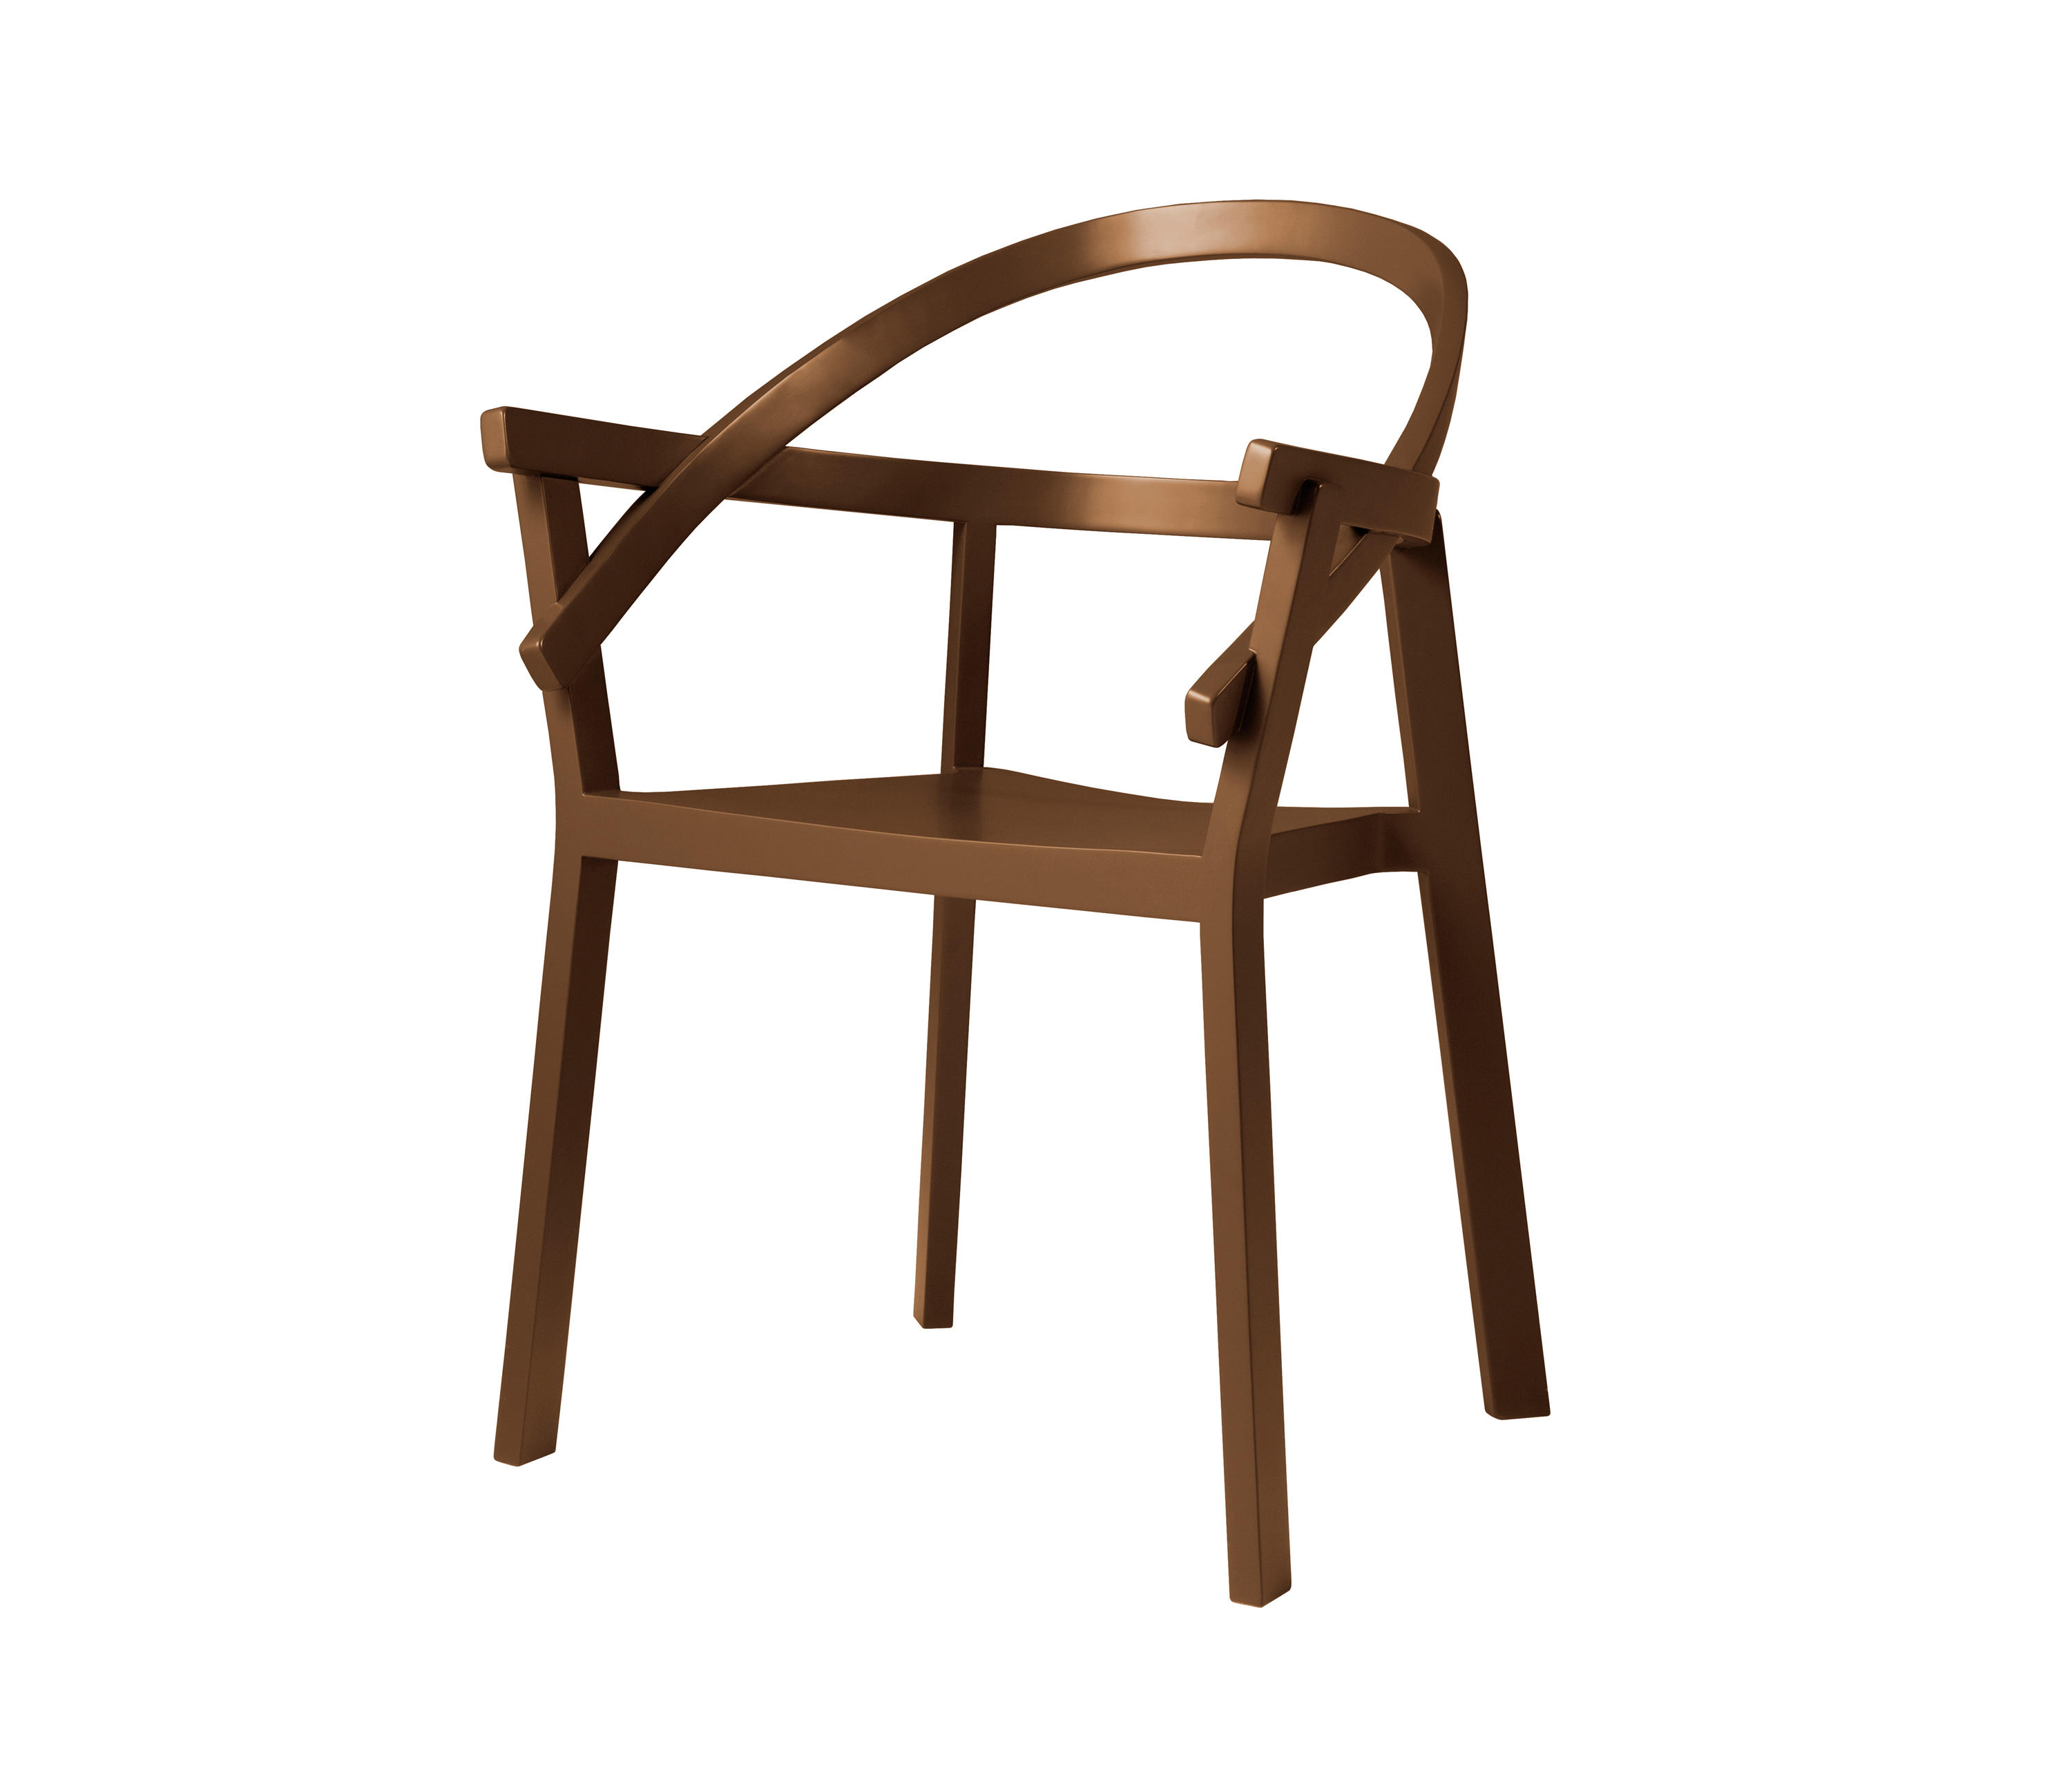 Embrasse Chair by Driade